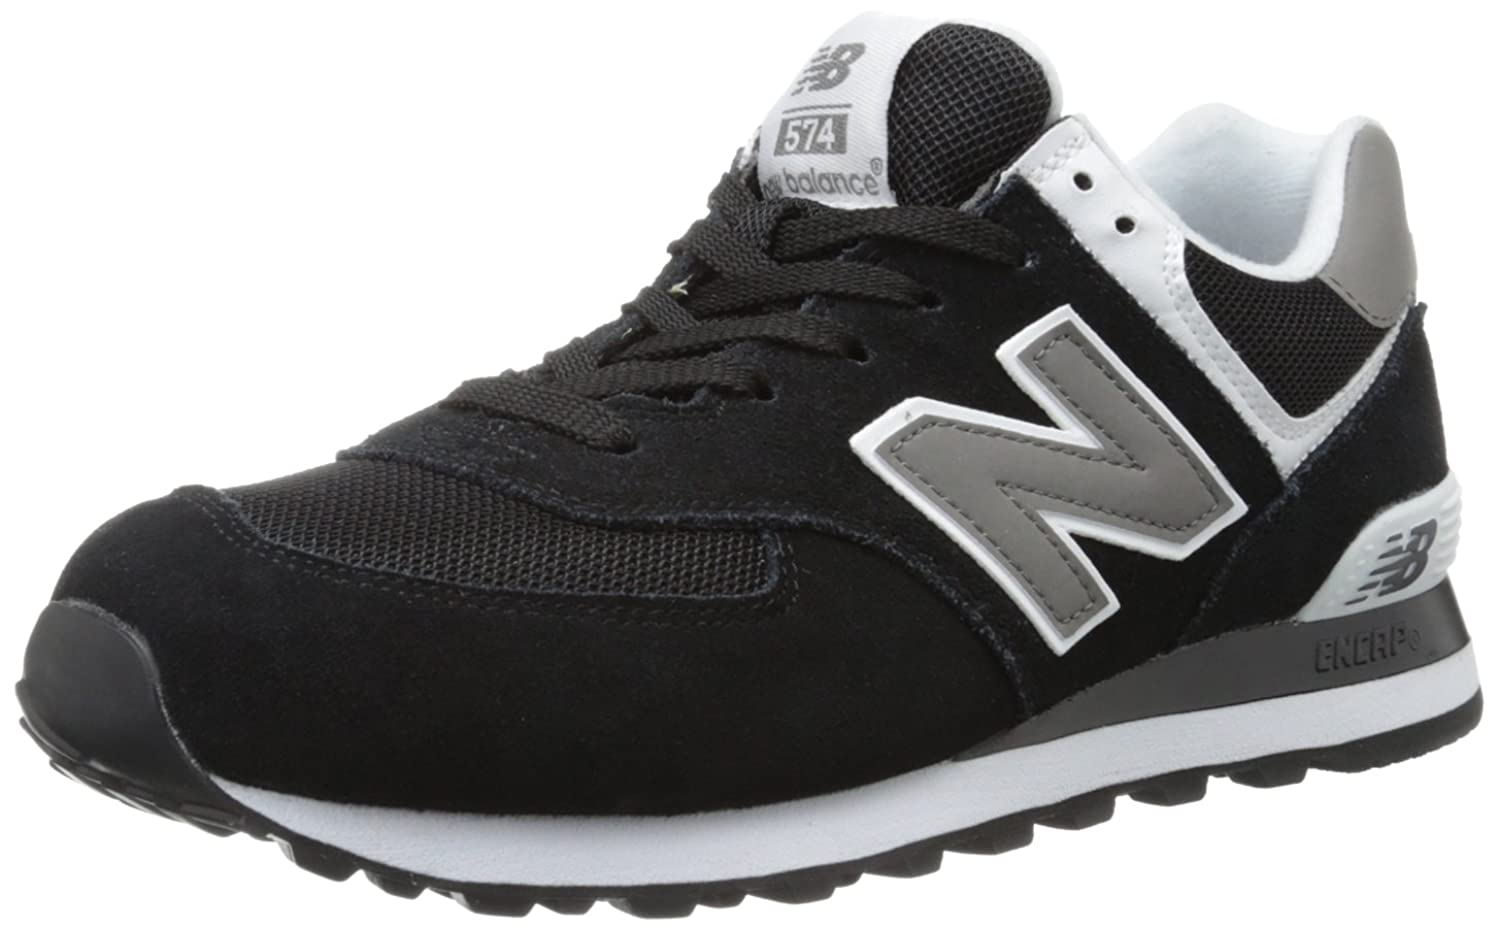 New Balance 574 Kvinner Sko Amazon WtezbaS